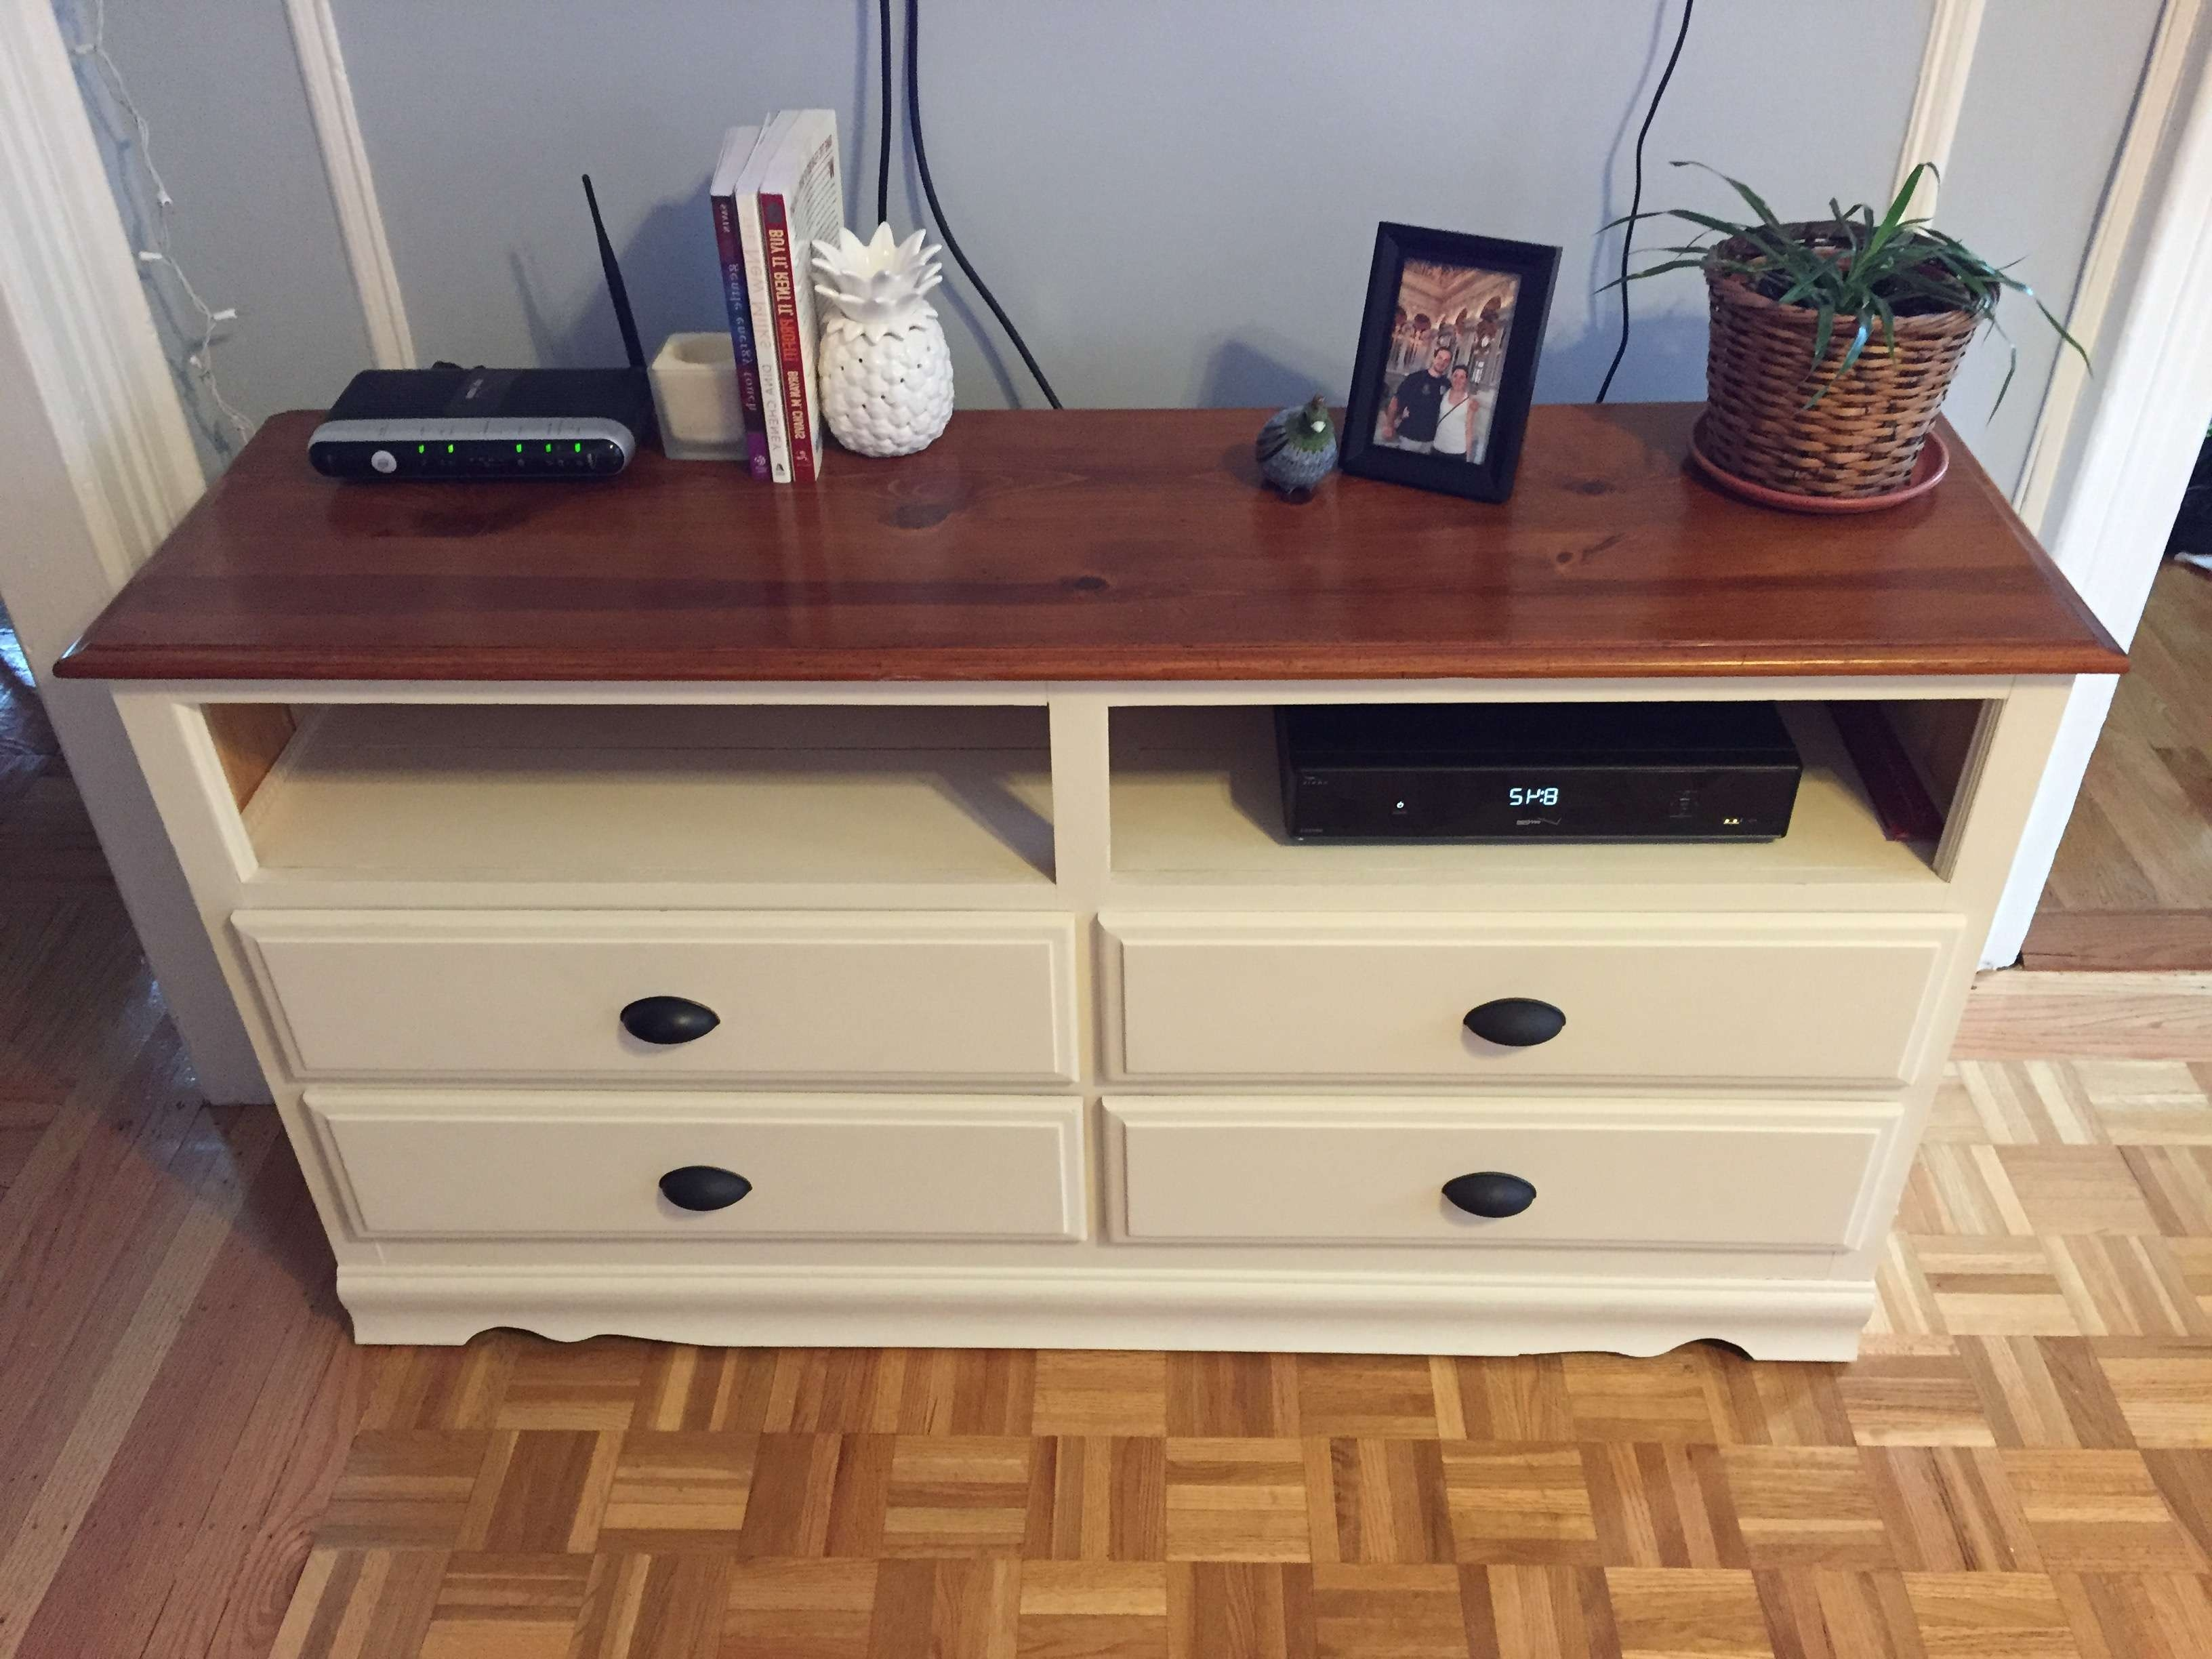 Bedroom Tv Stand Dresser Combo | Johnfante Dressers In Dresser And Tv Stands  Combination (View